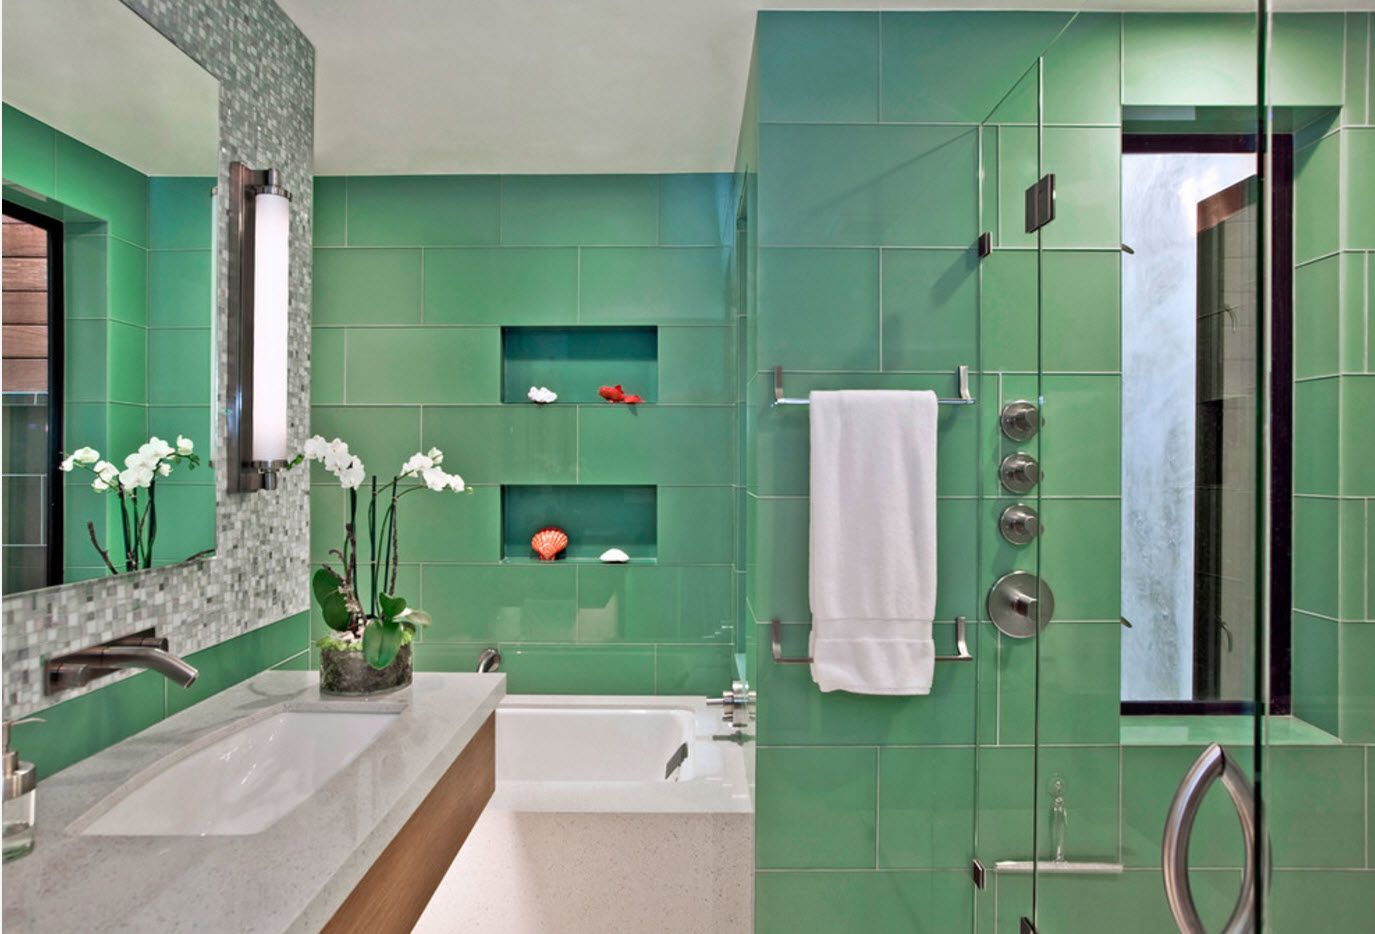 Nice relaxing turquoise wall tile interior finishing for the modern bathroom full of glass surfaces